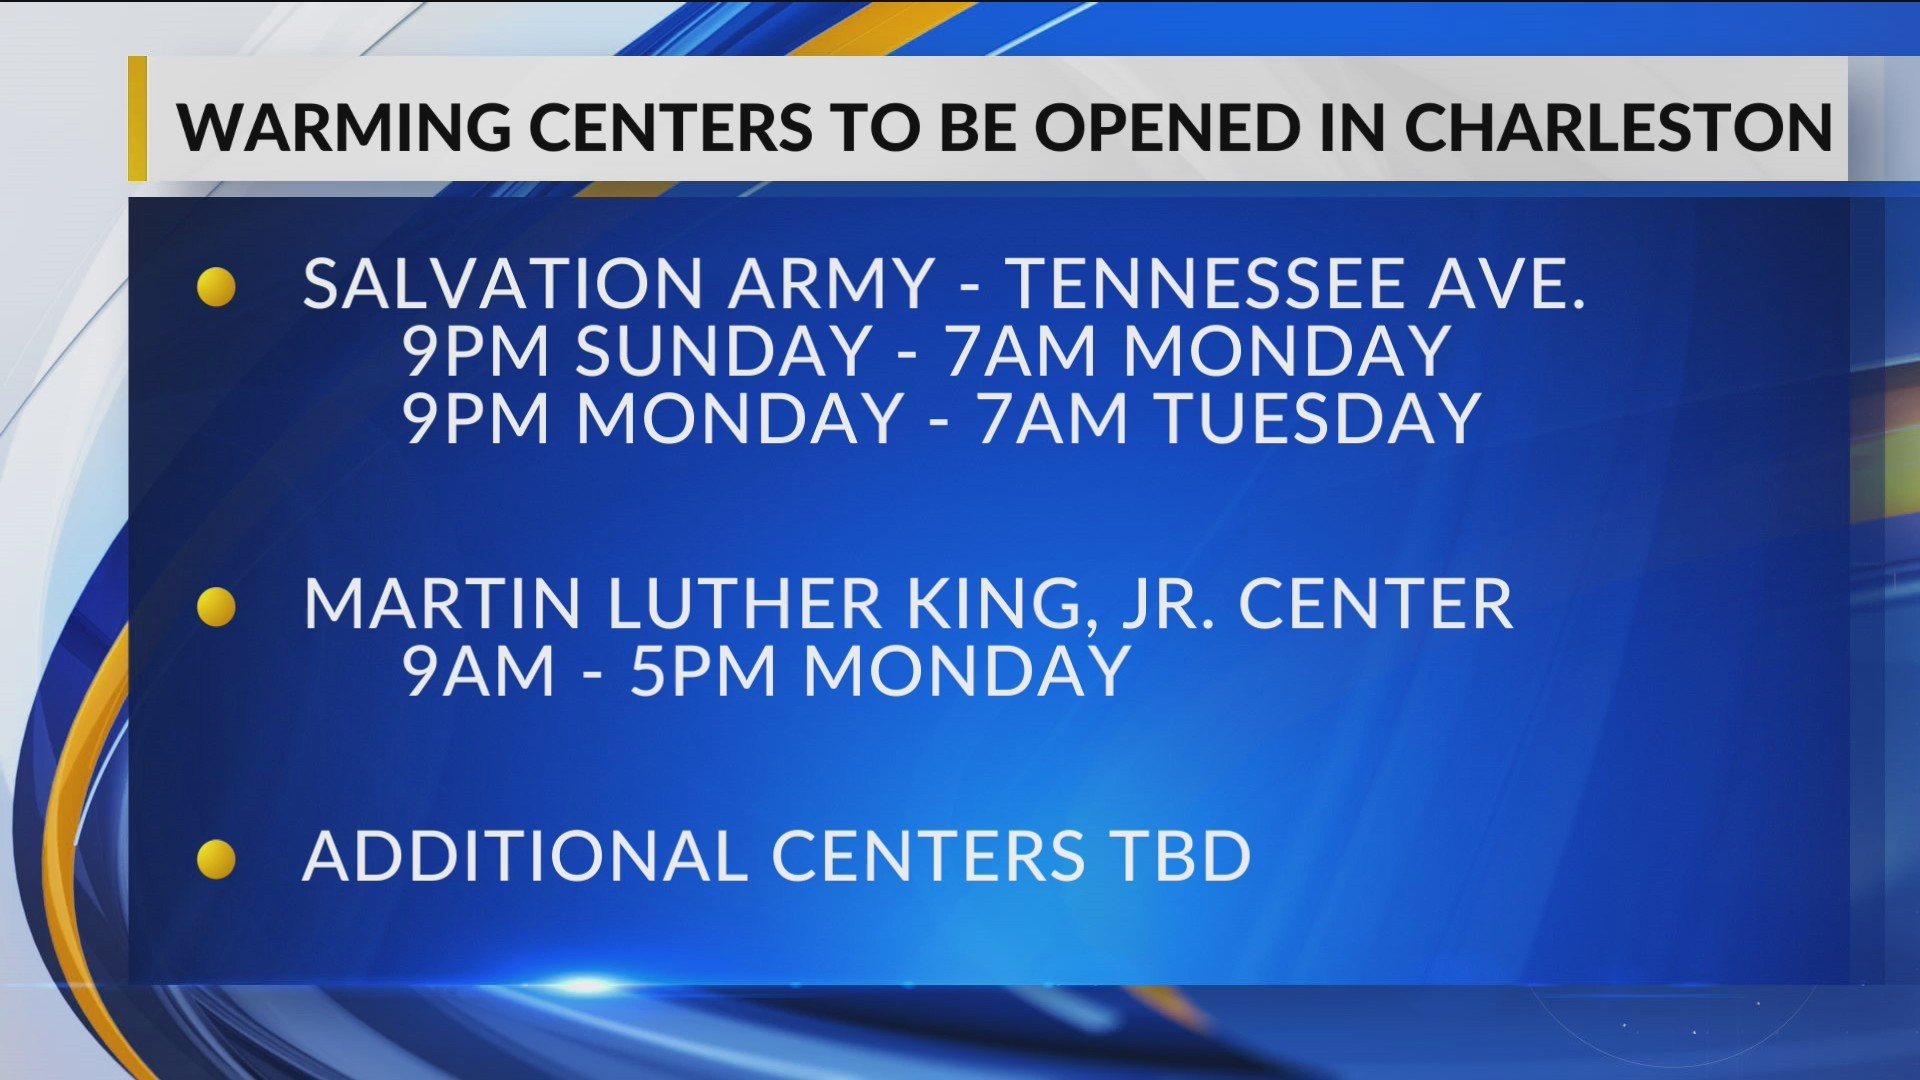 Charleston to Open Warming Centers for Expected Frigid Weekend